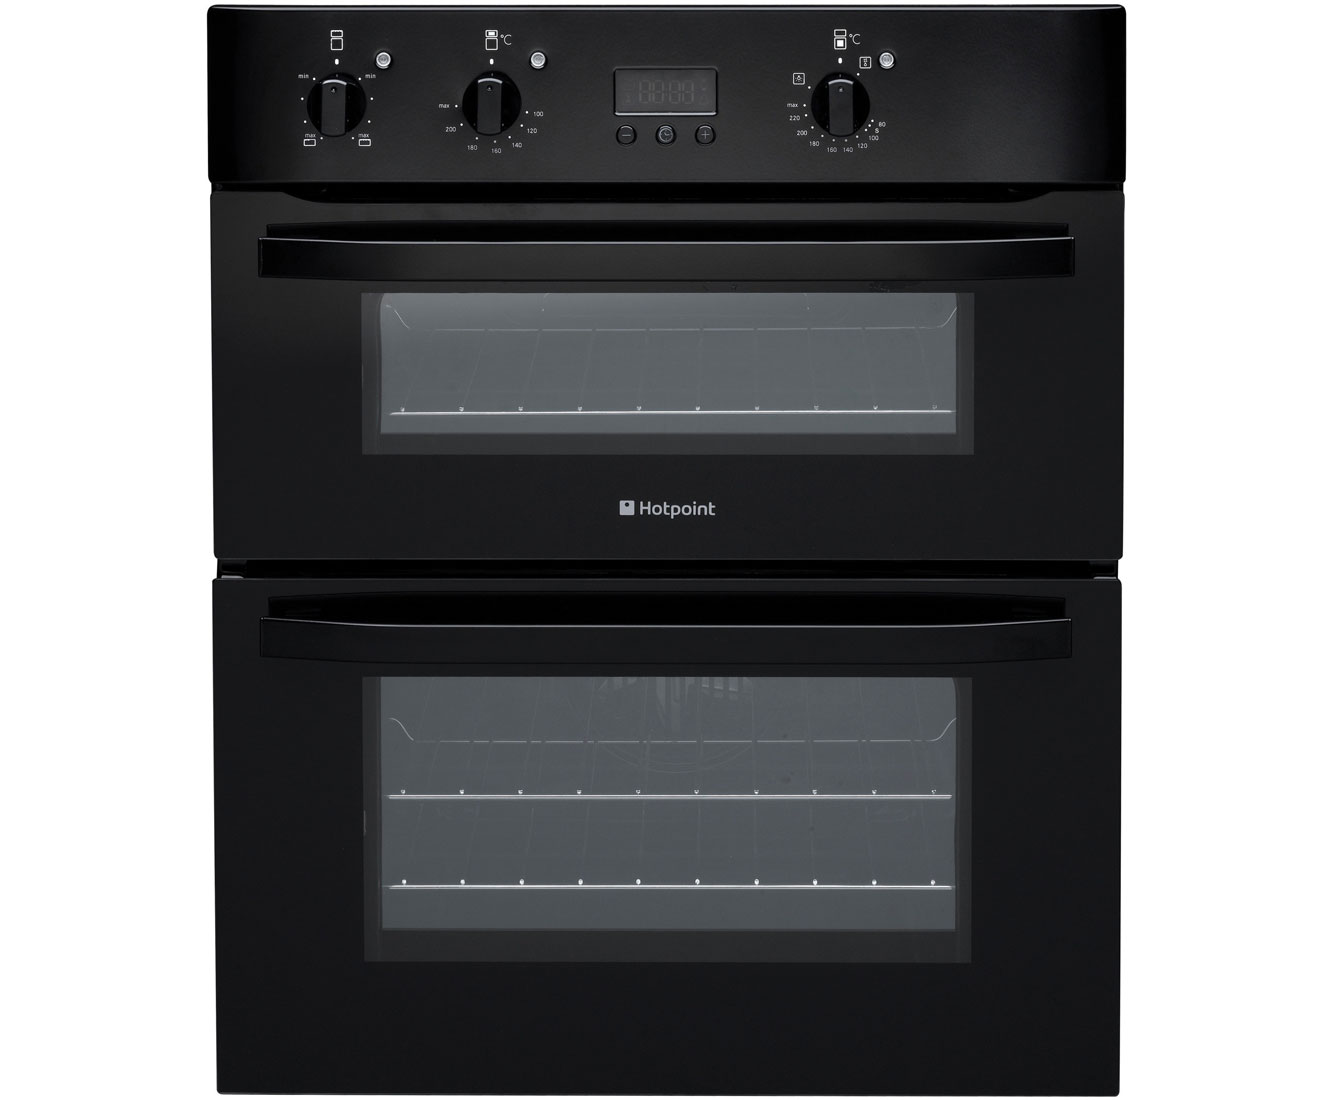 buy cheap hotpoint built in double oven compare cookers. Black Bedroom Furniture Sets. Home Design Ideas